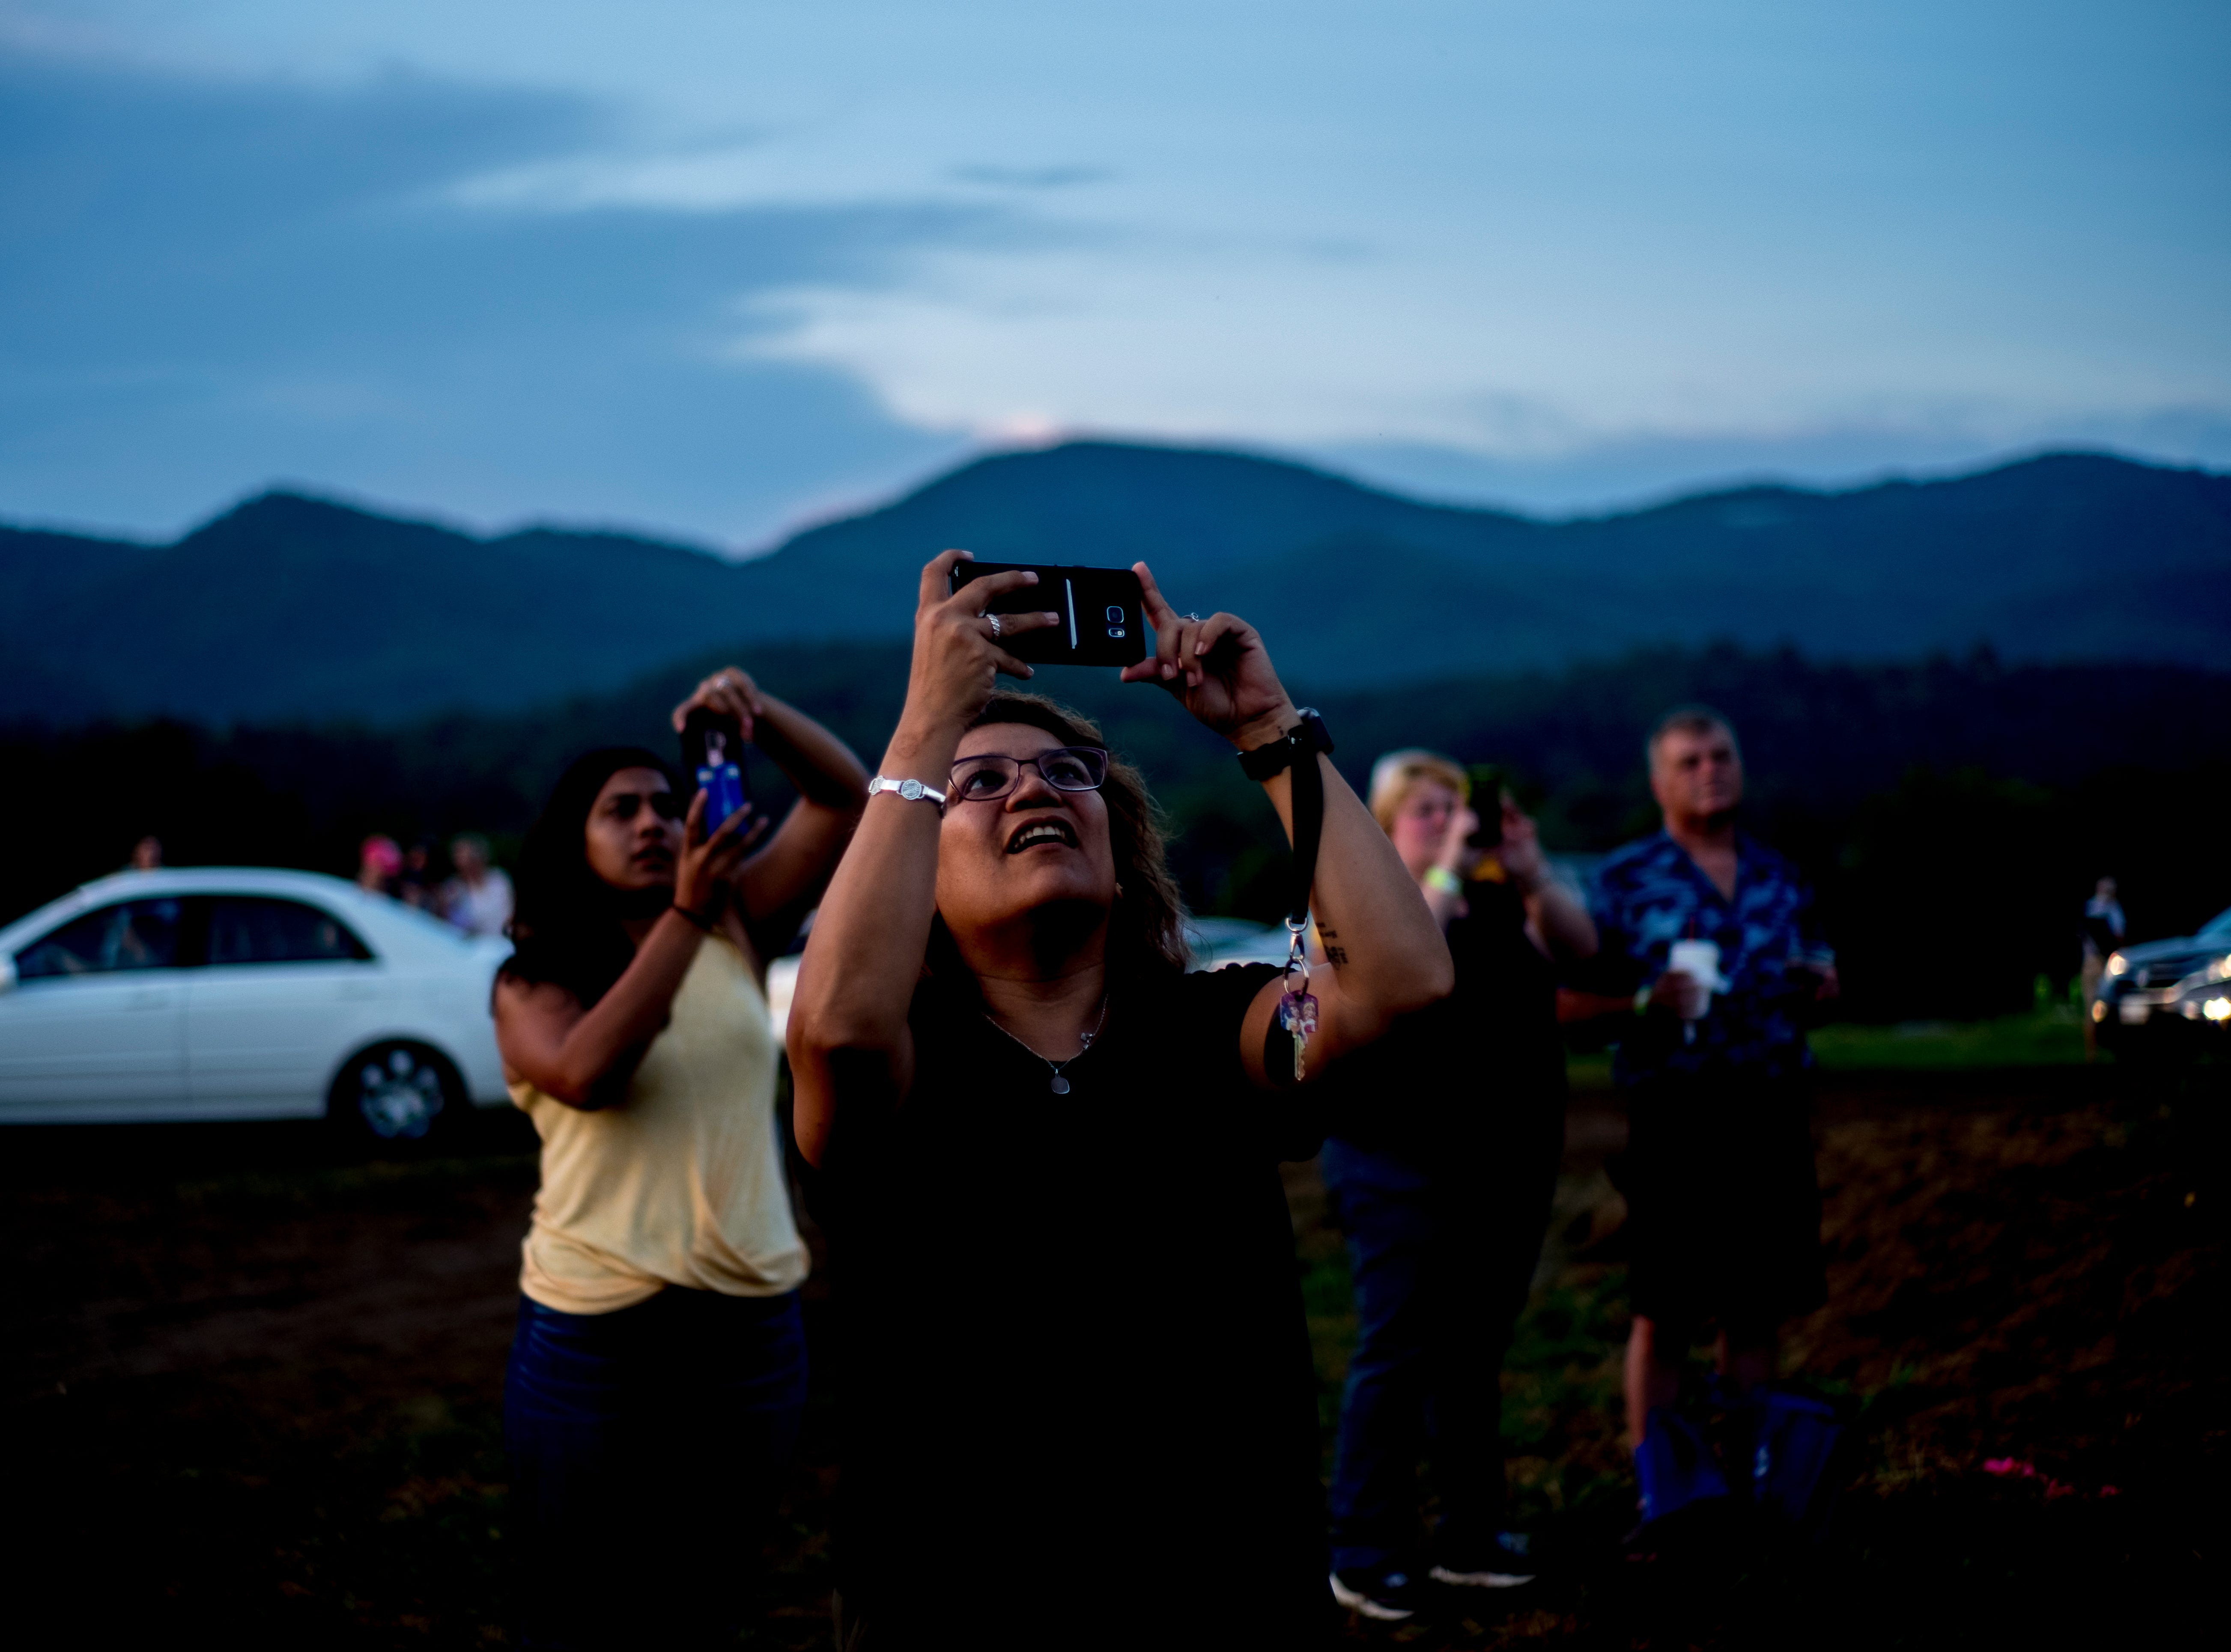 Visitors snap photos of the hot air balloons at the second annual Smoky Mountain Balloon Festival in Townsend, Tennessee on Saturday, August 18, 2018. The festival featured several hot air balloons, food trucks, wine tasting and live entertainment.